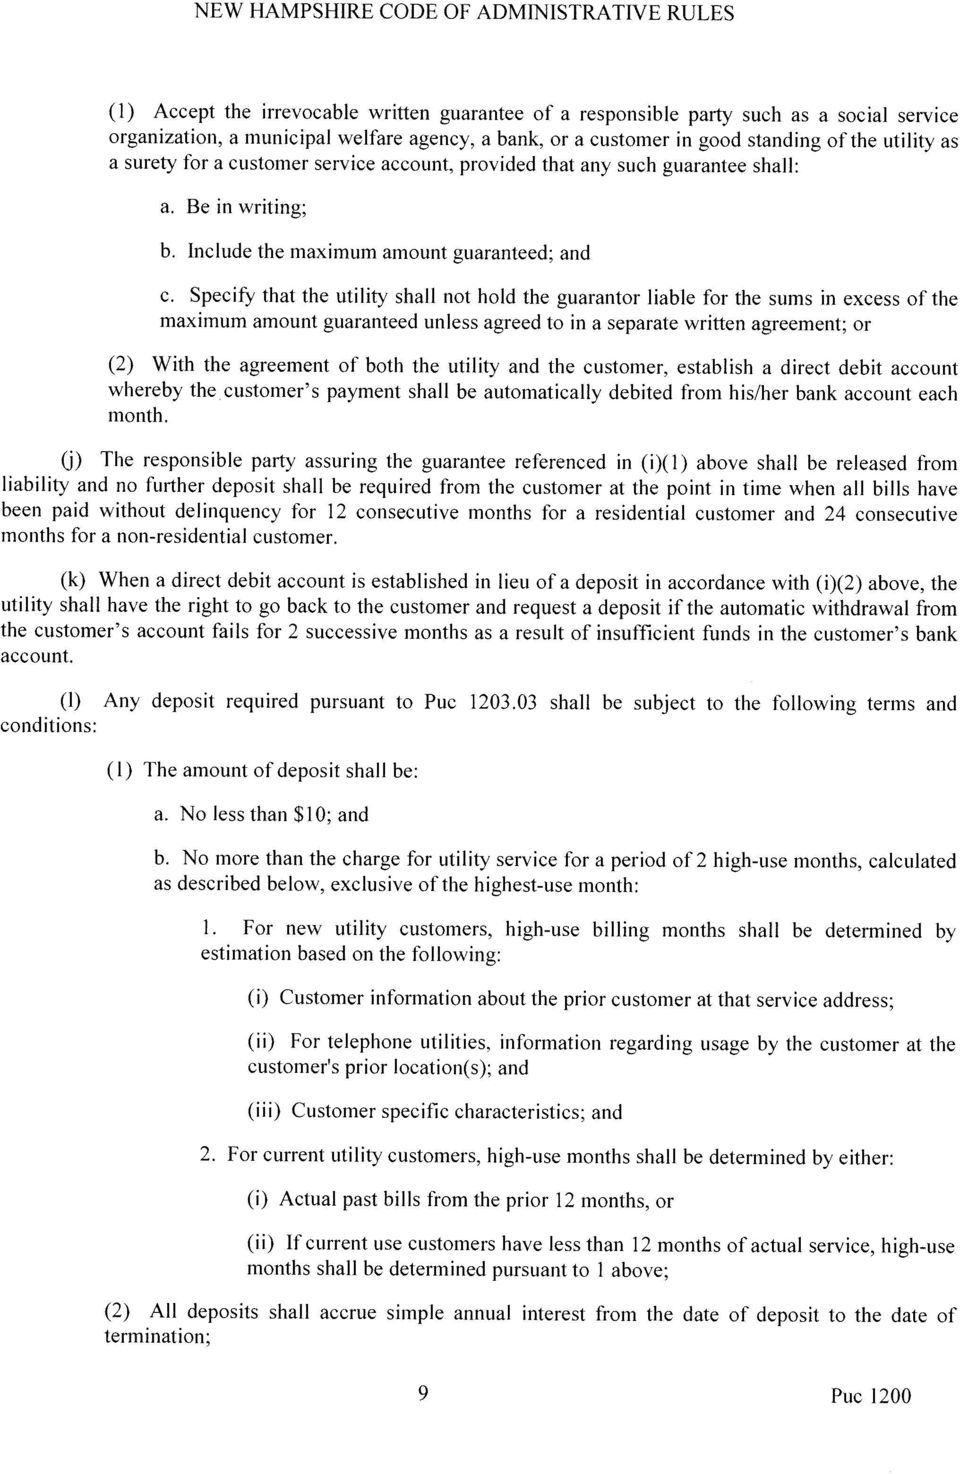 Specify that the utility shall not hold maximum amount guaranteed unless agreed guarantor liable excess of the separate written agreement; the to in a for the sums in or (2) With the agreement of